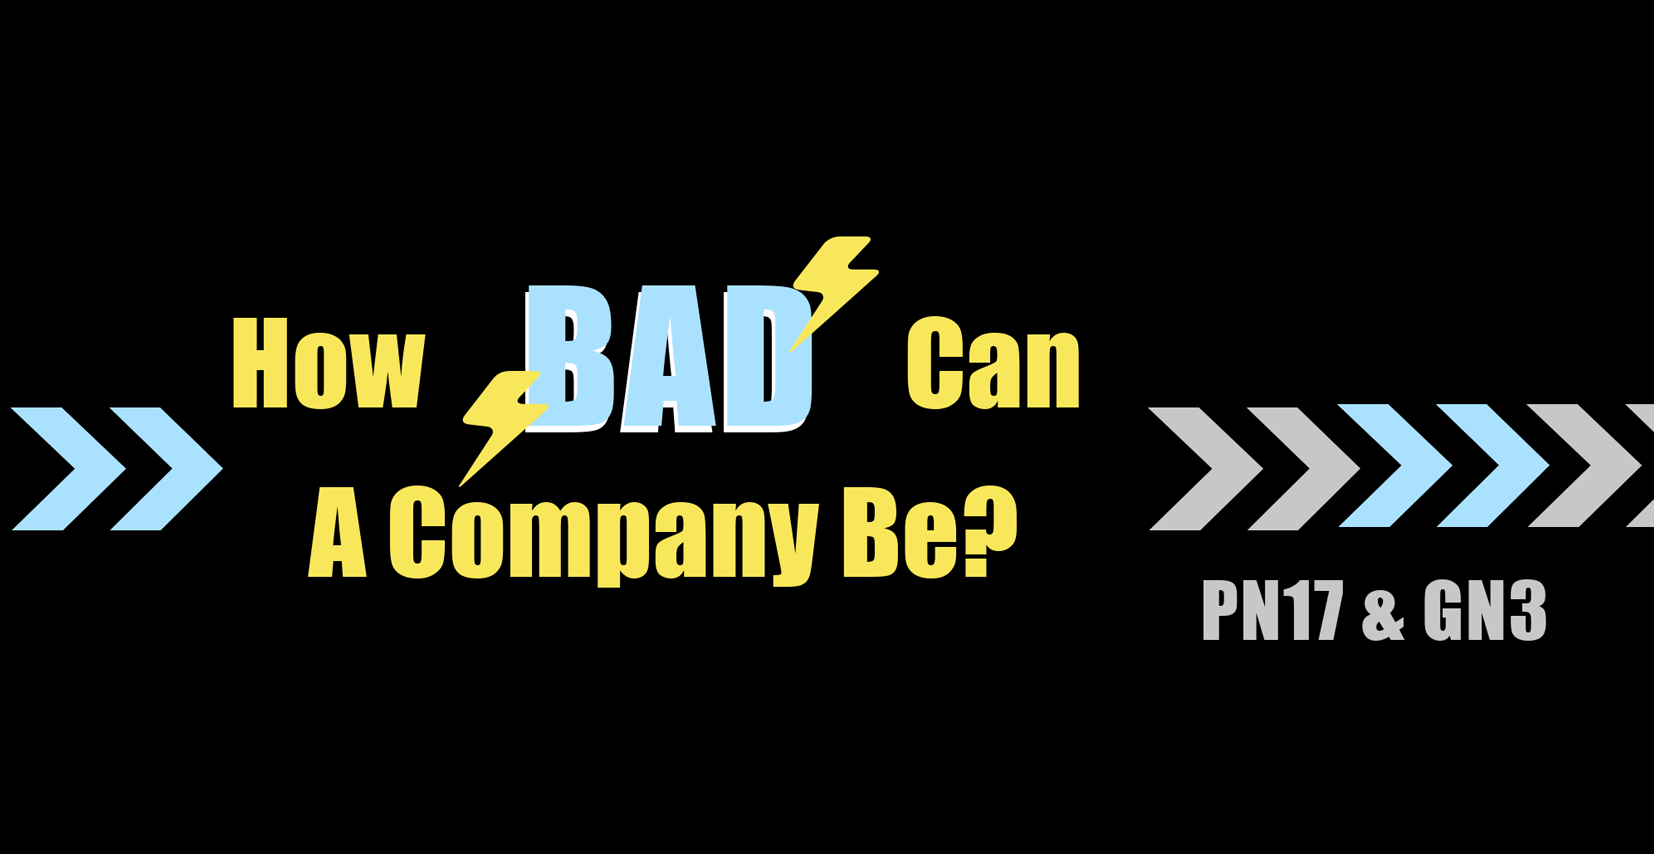 How bad a company can be? PN17 & GN3